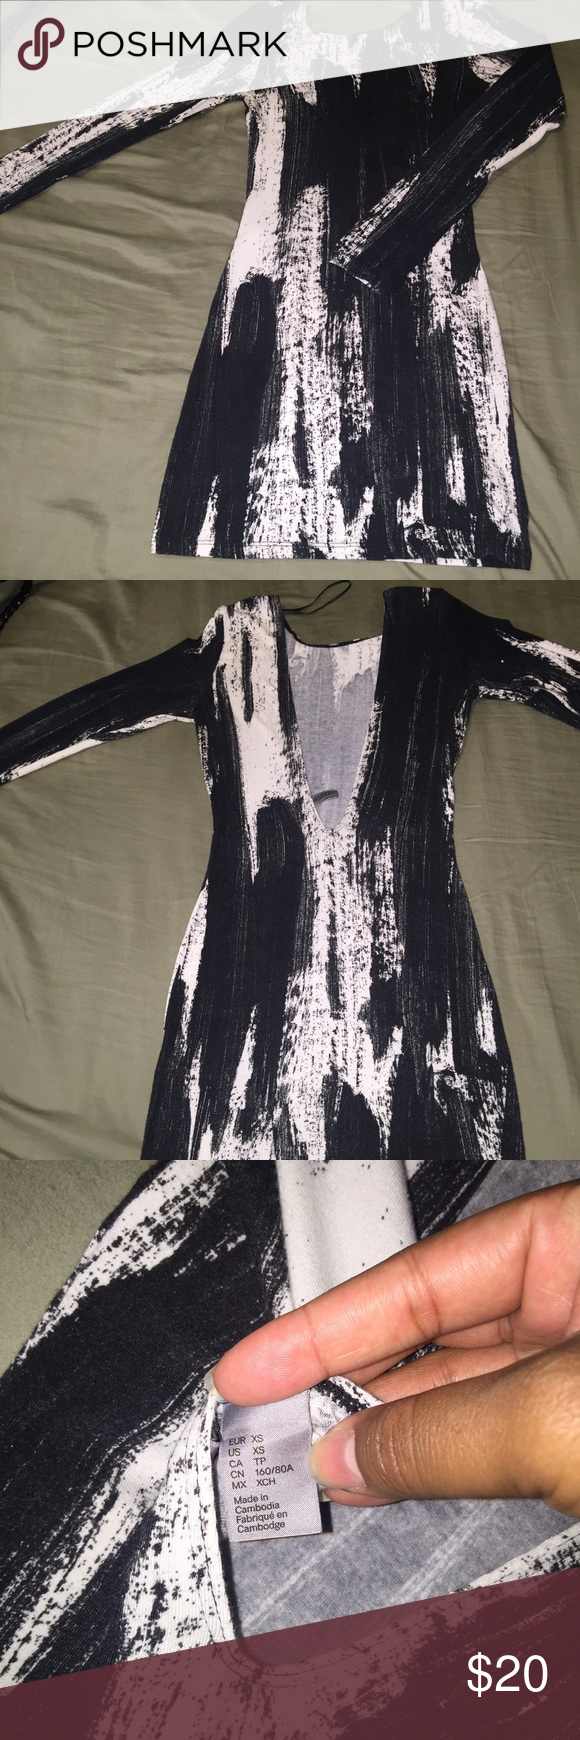 XS H&M mini dress Great condition! Worn once H&M Dresses Mini